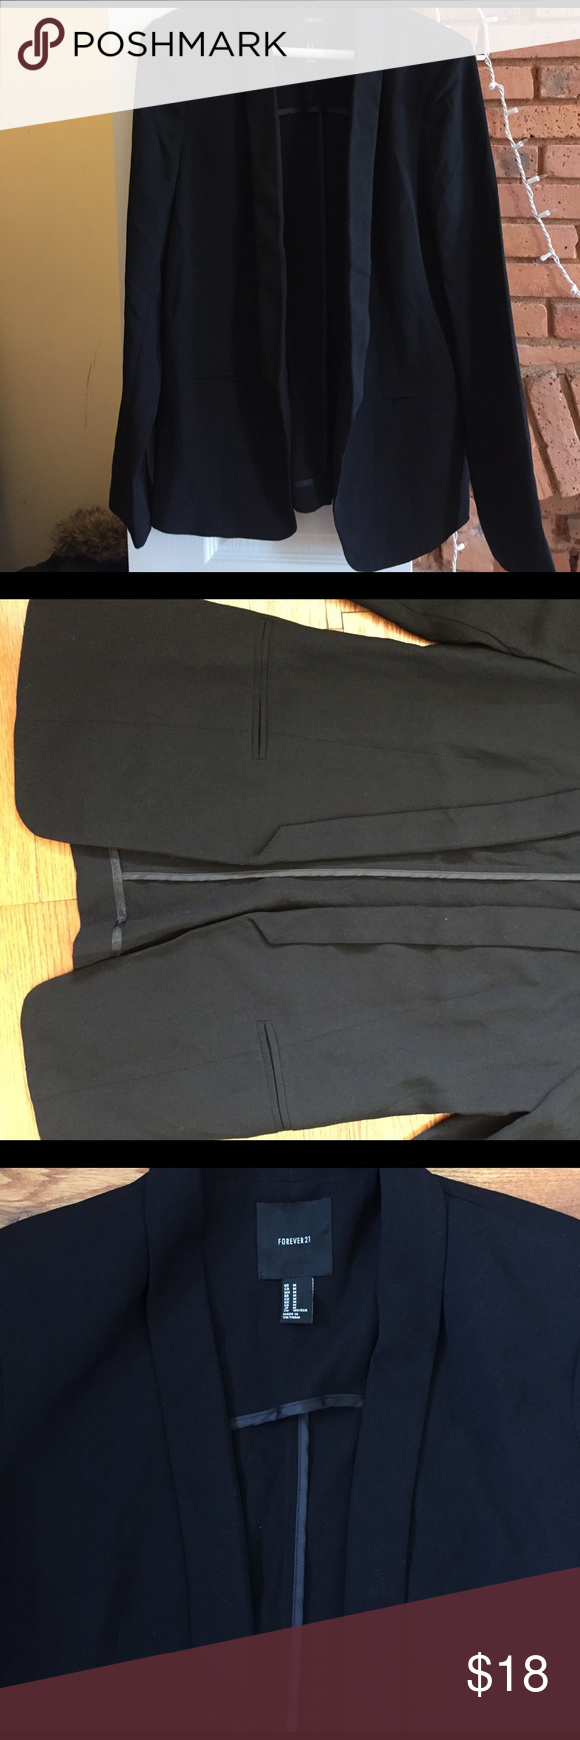 Black blazer Nice girly lose fit. Very flattering . Worn once, great condition. Forever 21 Jackets & Coats Blazers